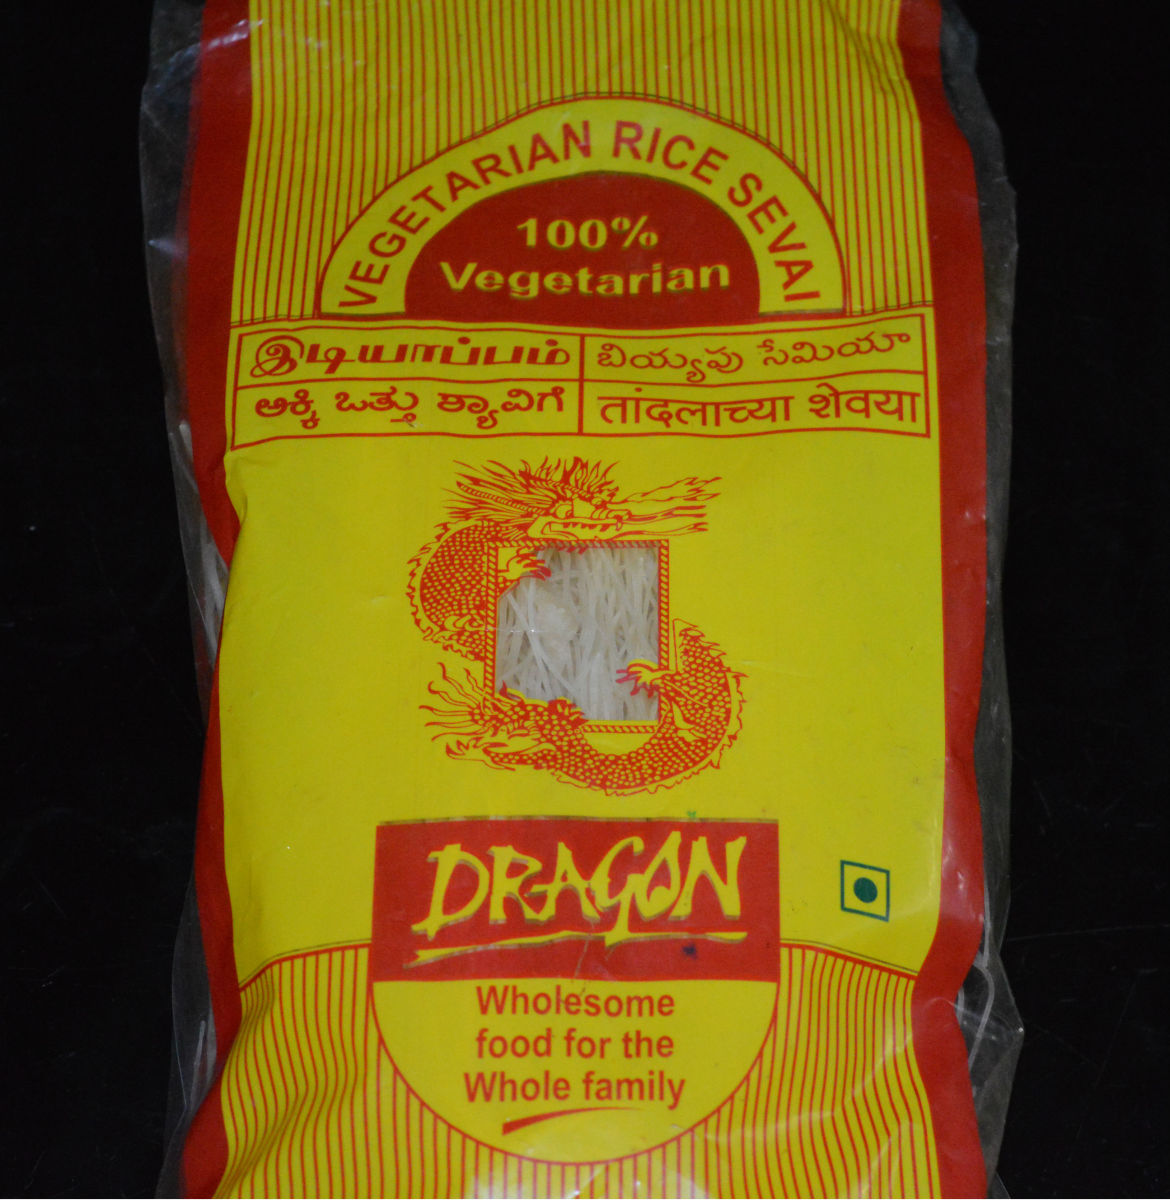 I used Dragon brand rice sevai.